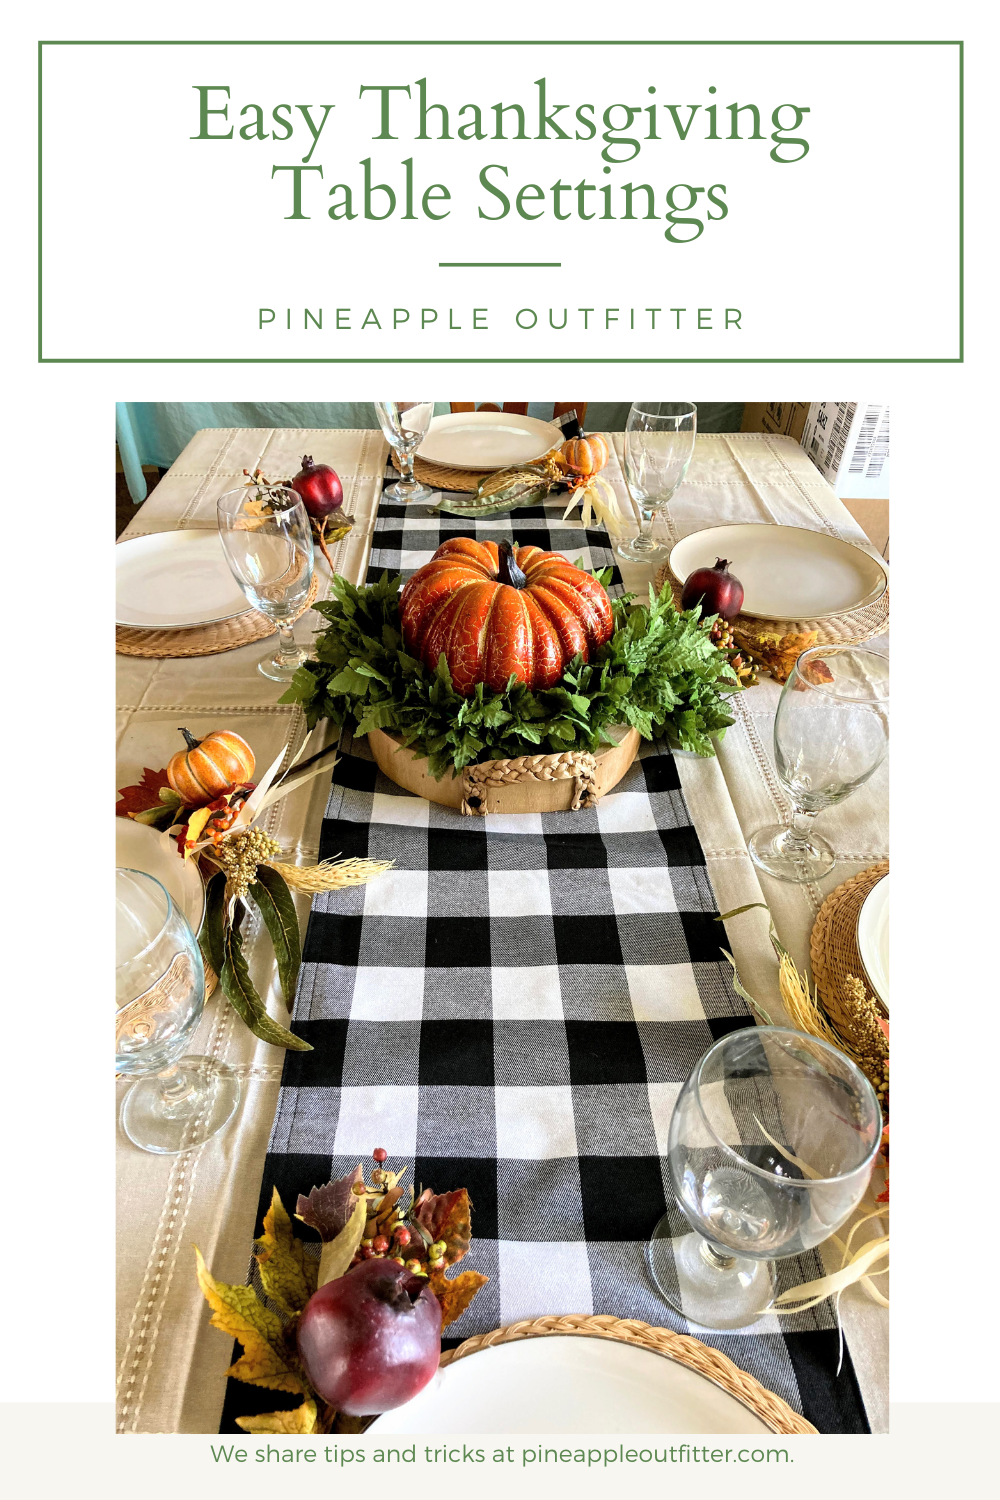 Easy Thanksgiving Table Settings that you can put together with items you already have.